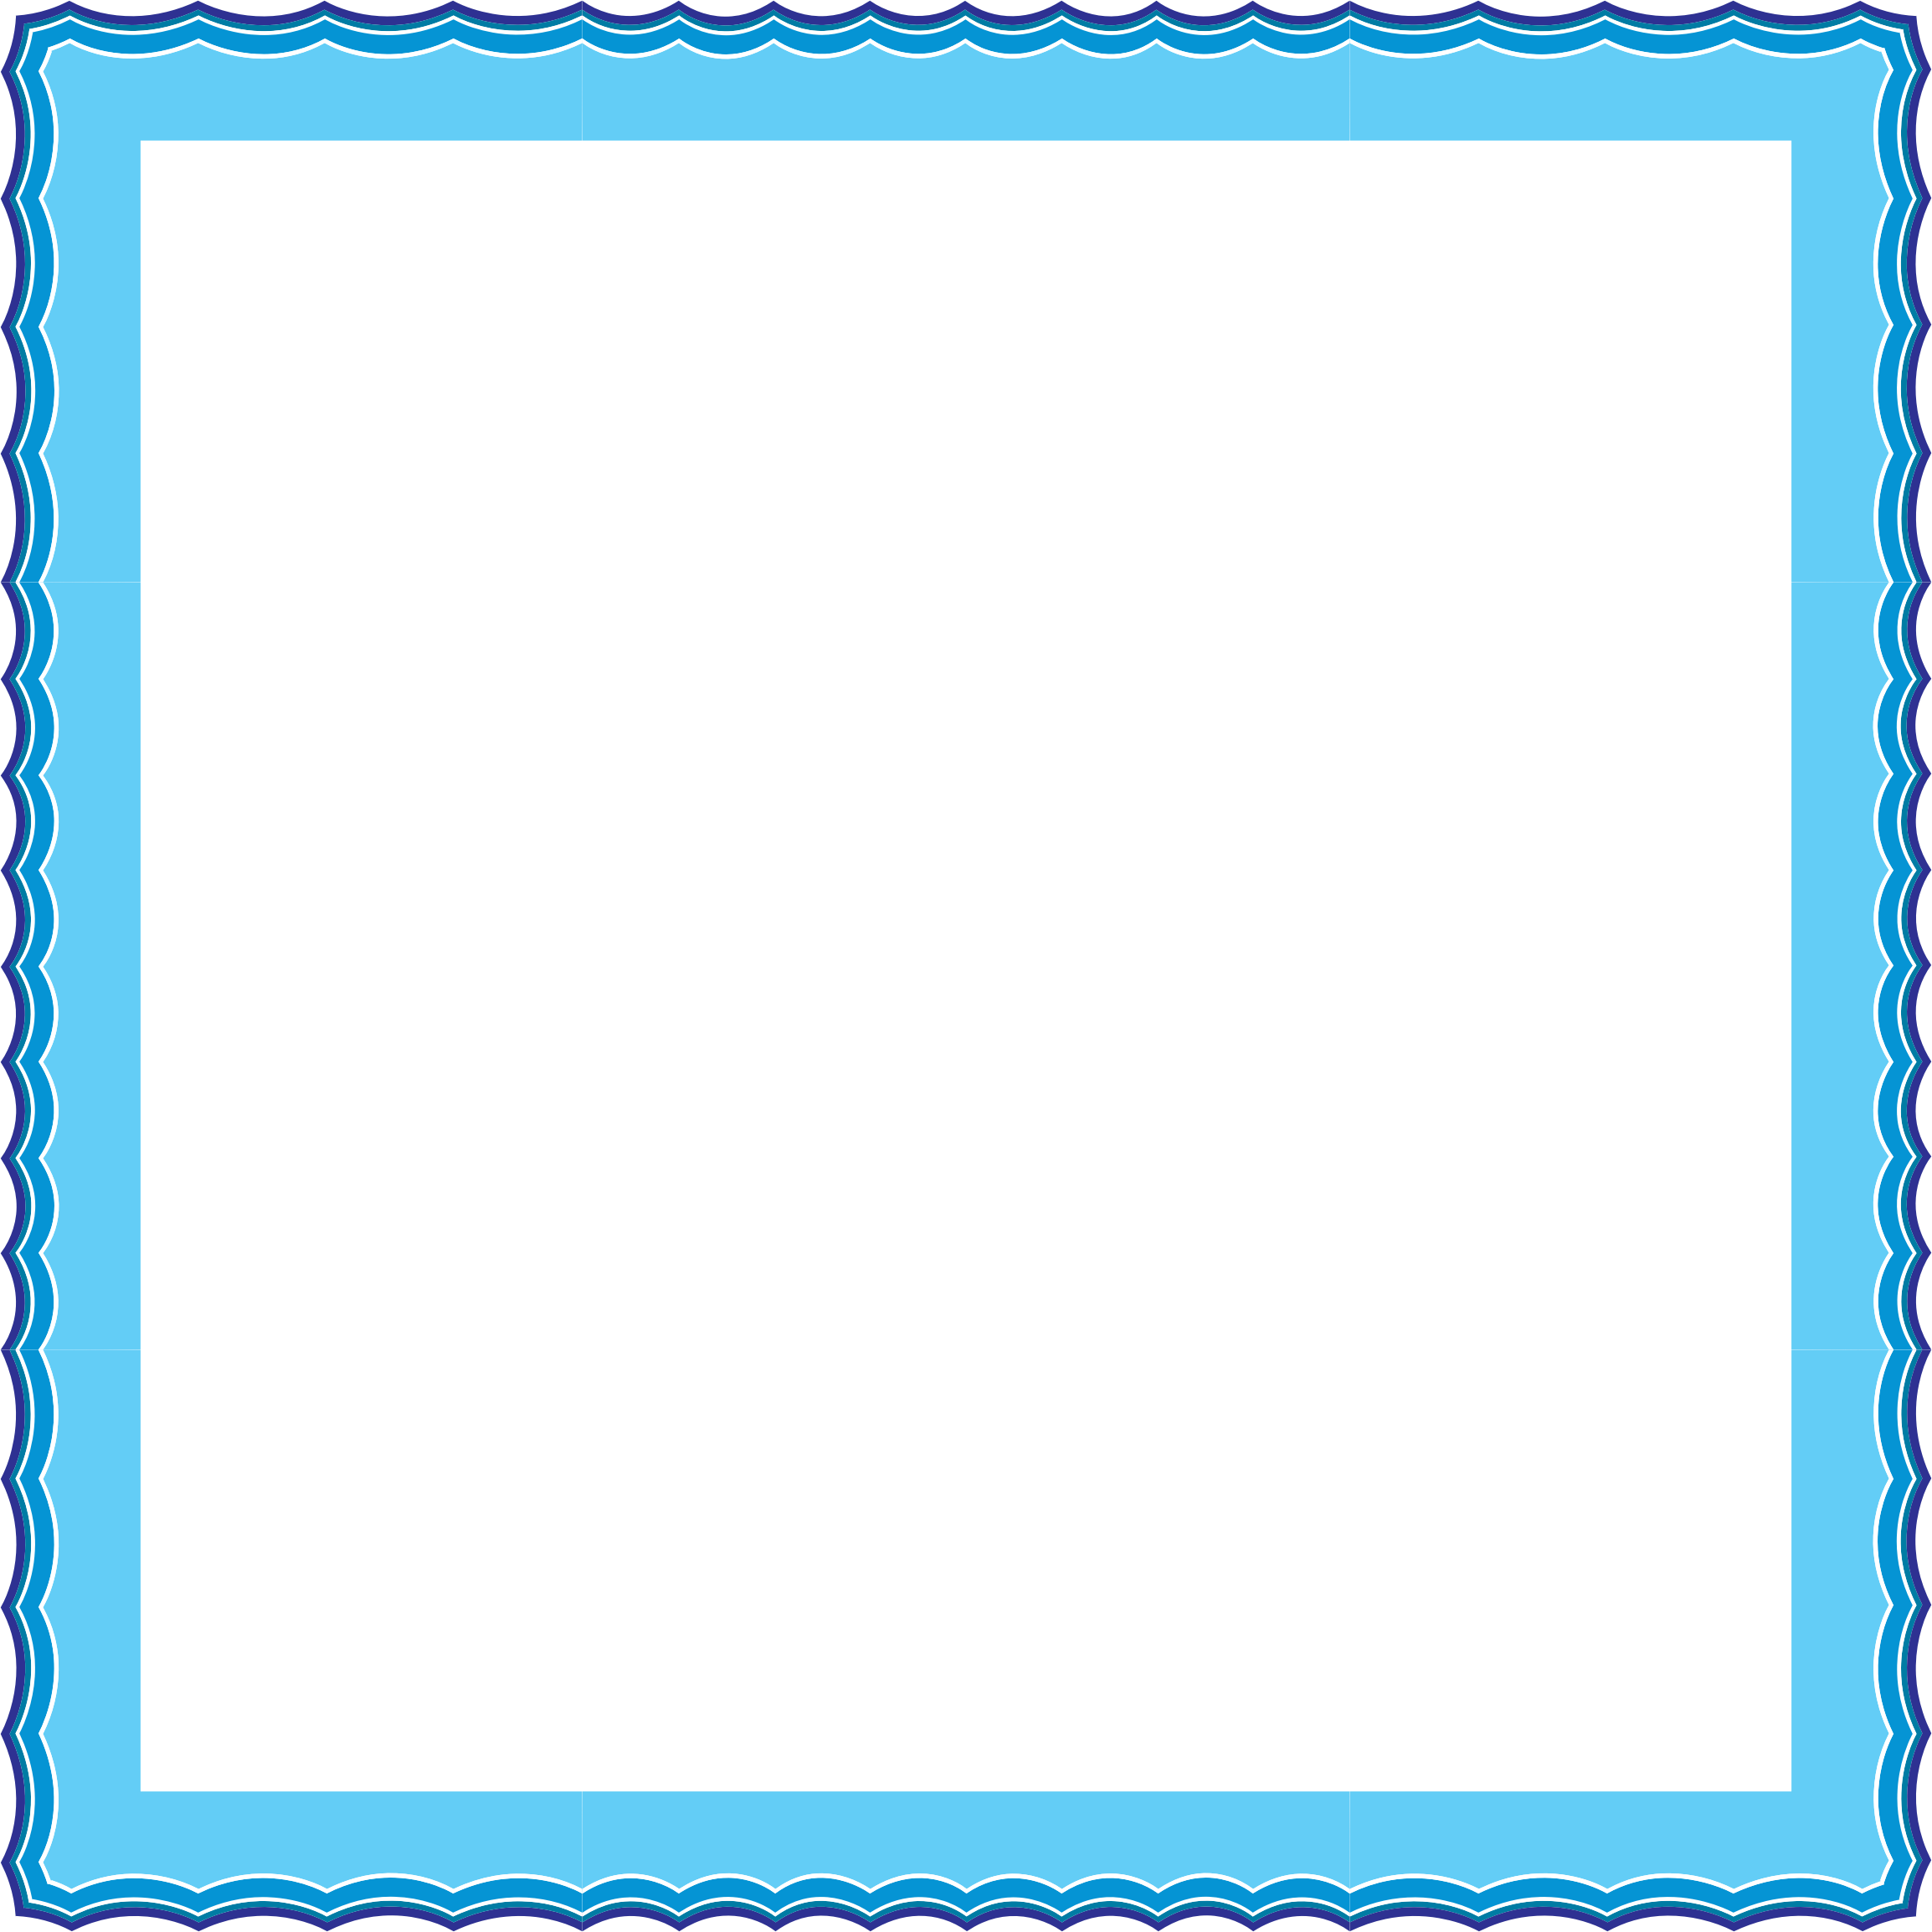 Water frame png. Waves icons free and